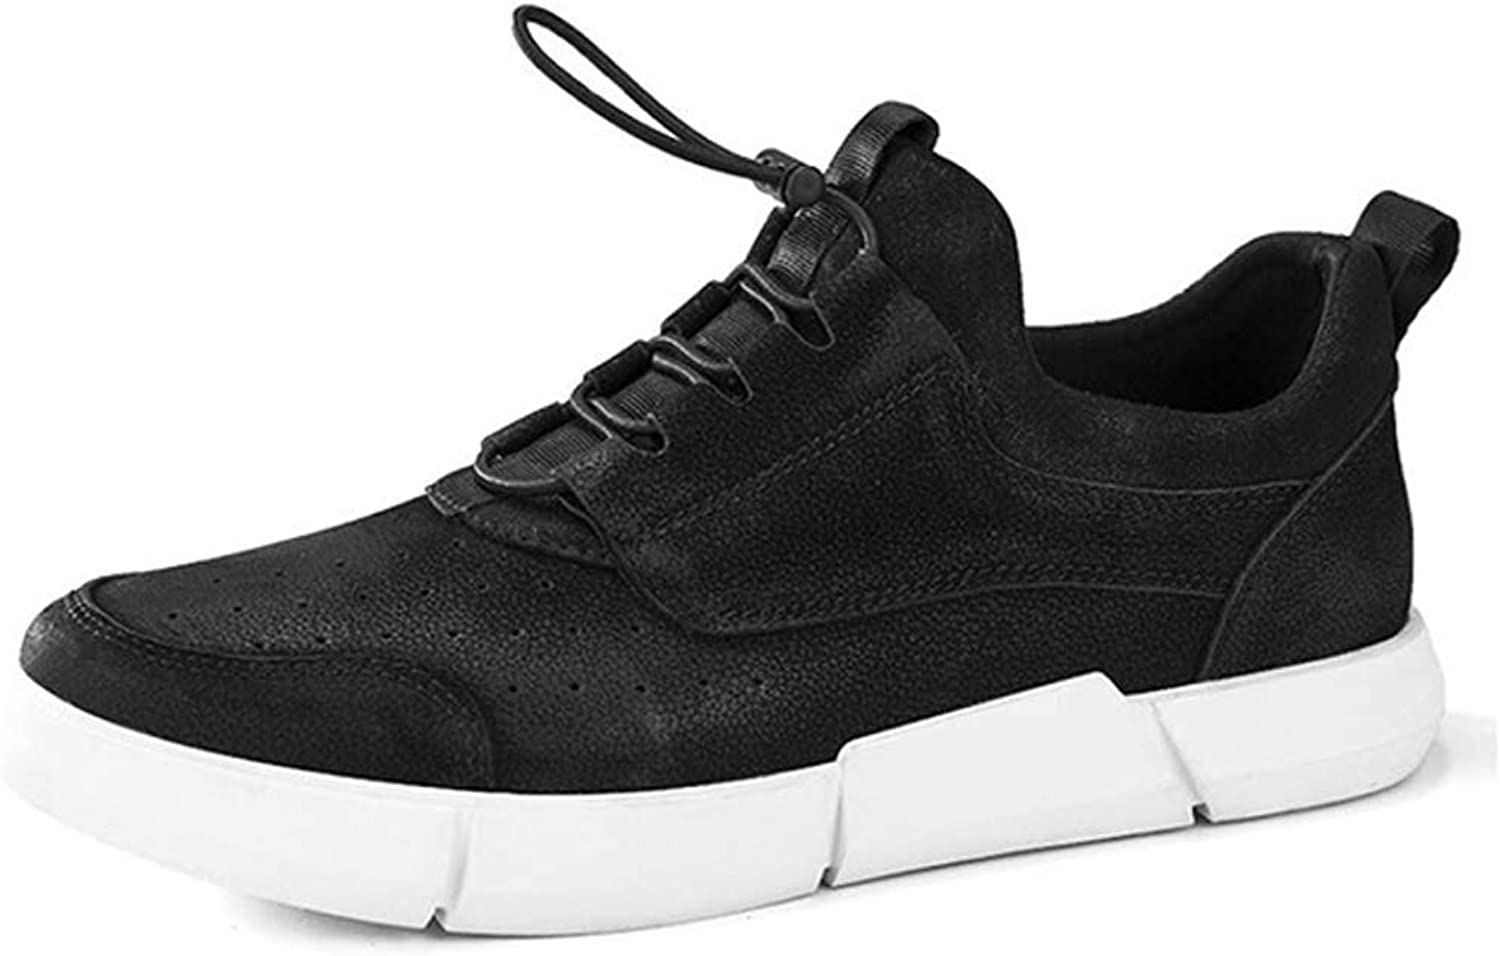 Leather Sneakers Outdoor Leisure Fashion Versatile Shock Absorption Breathable